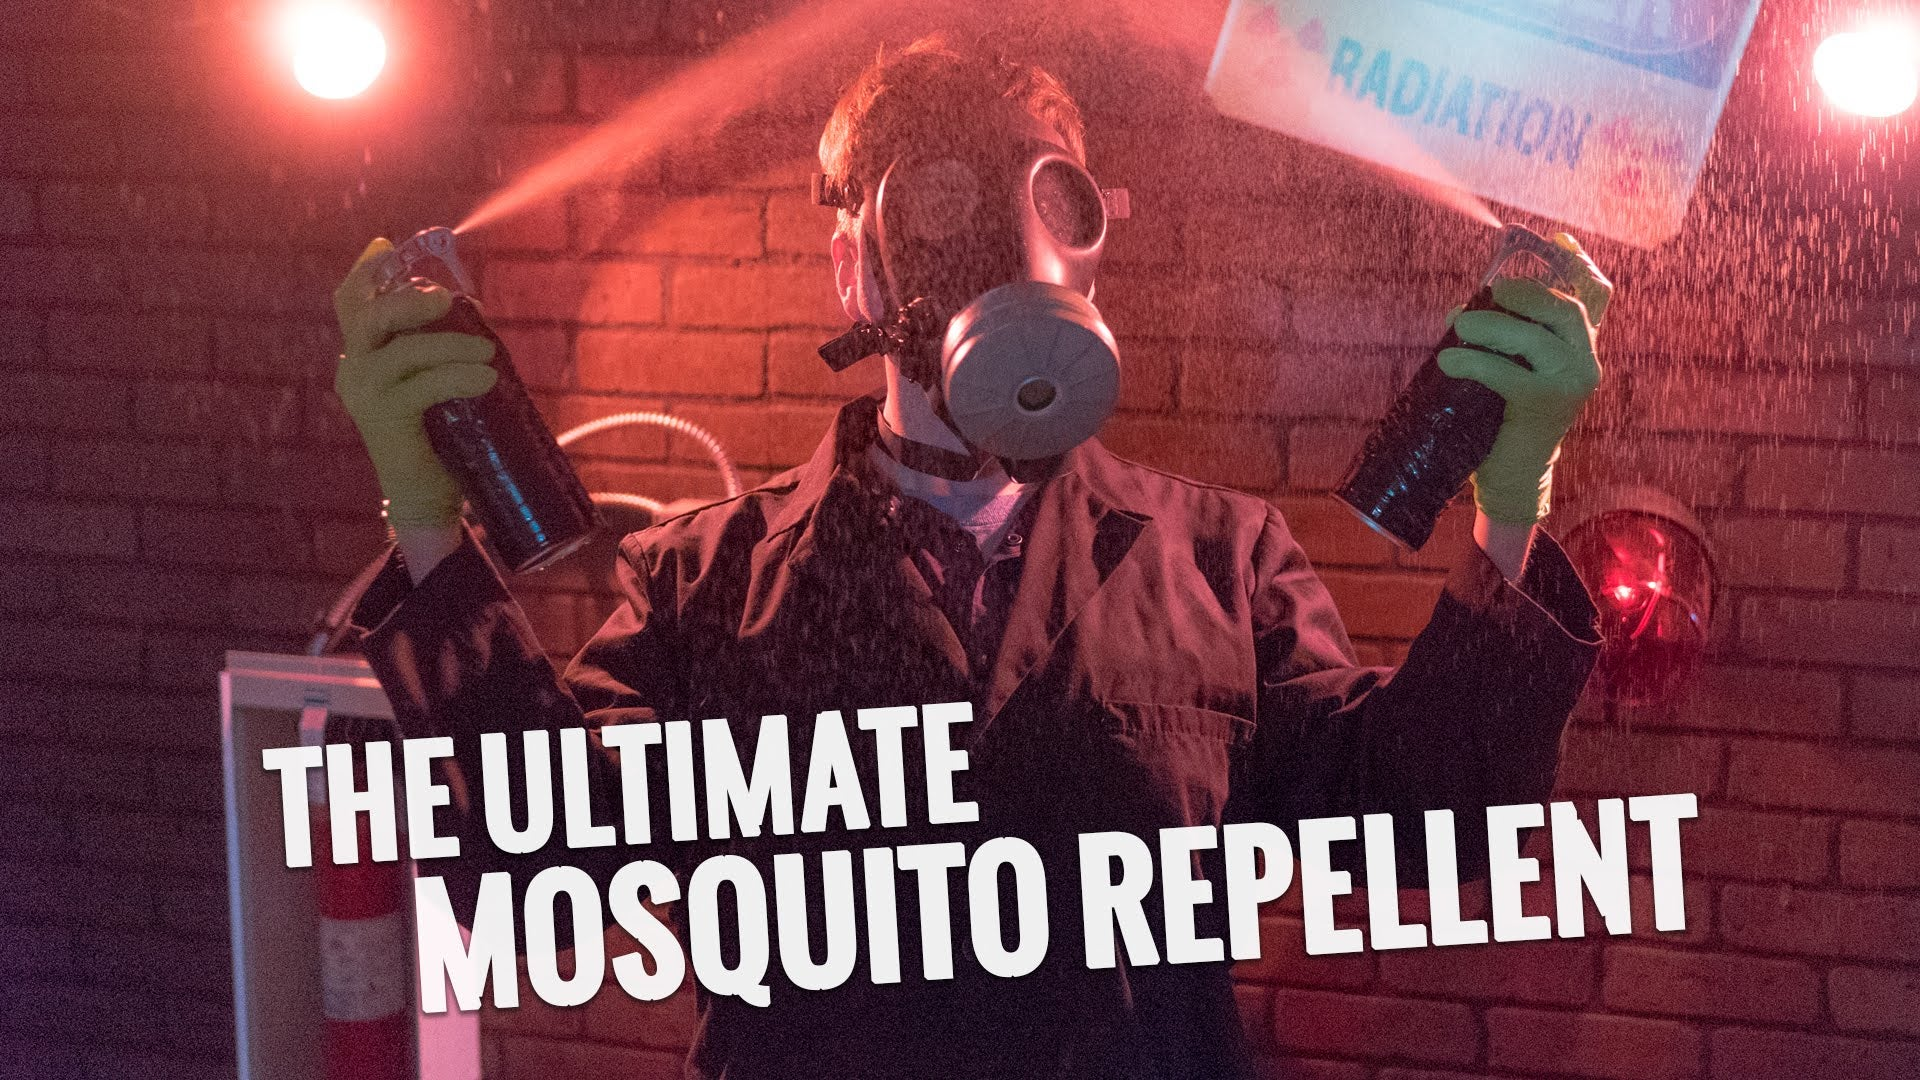 Make an Effective DIY Mosquito Repellent With Lemon Eucalyptus Oil